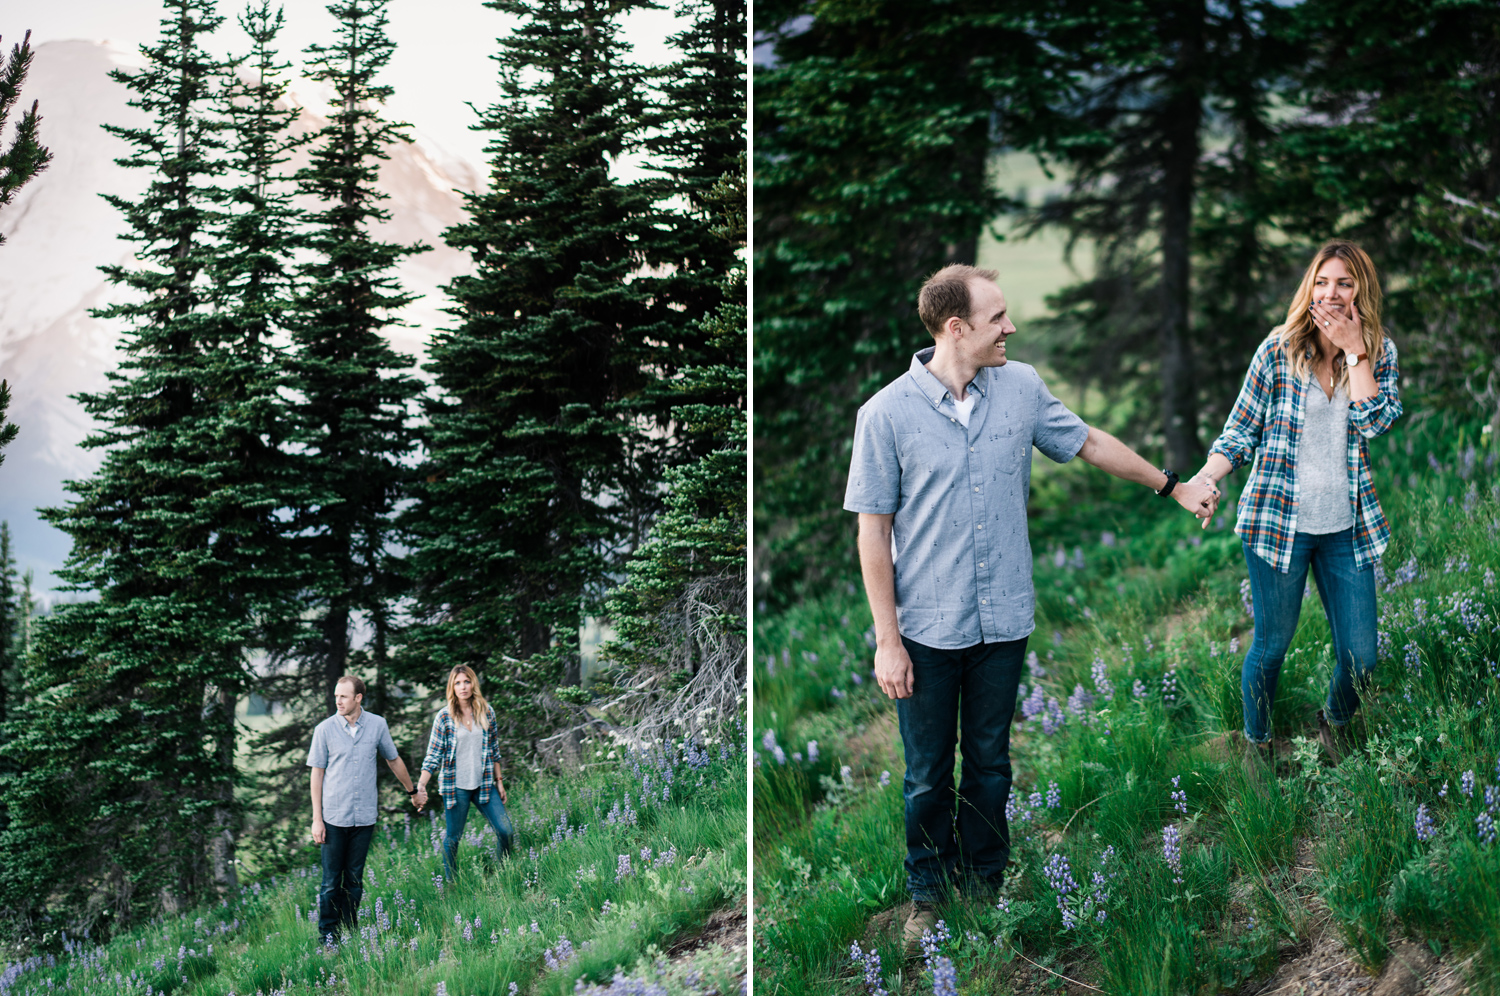 027-mt-rainier-adventure-engagement-session-seattle-film-photographer-ryan-flynn.jpg